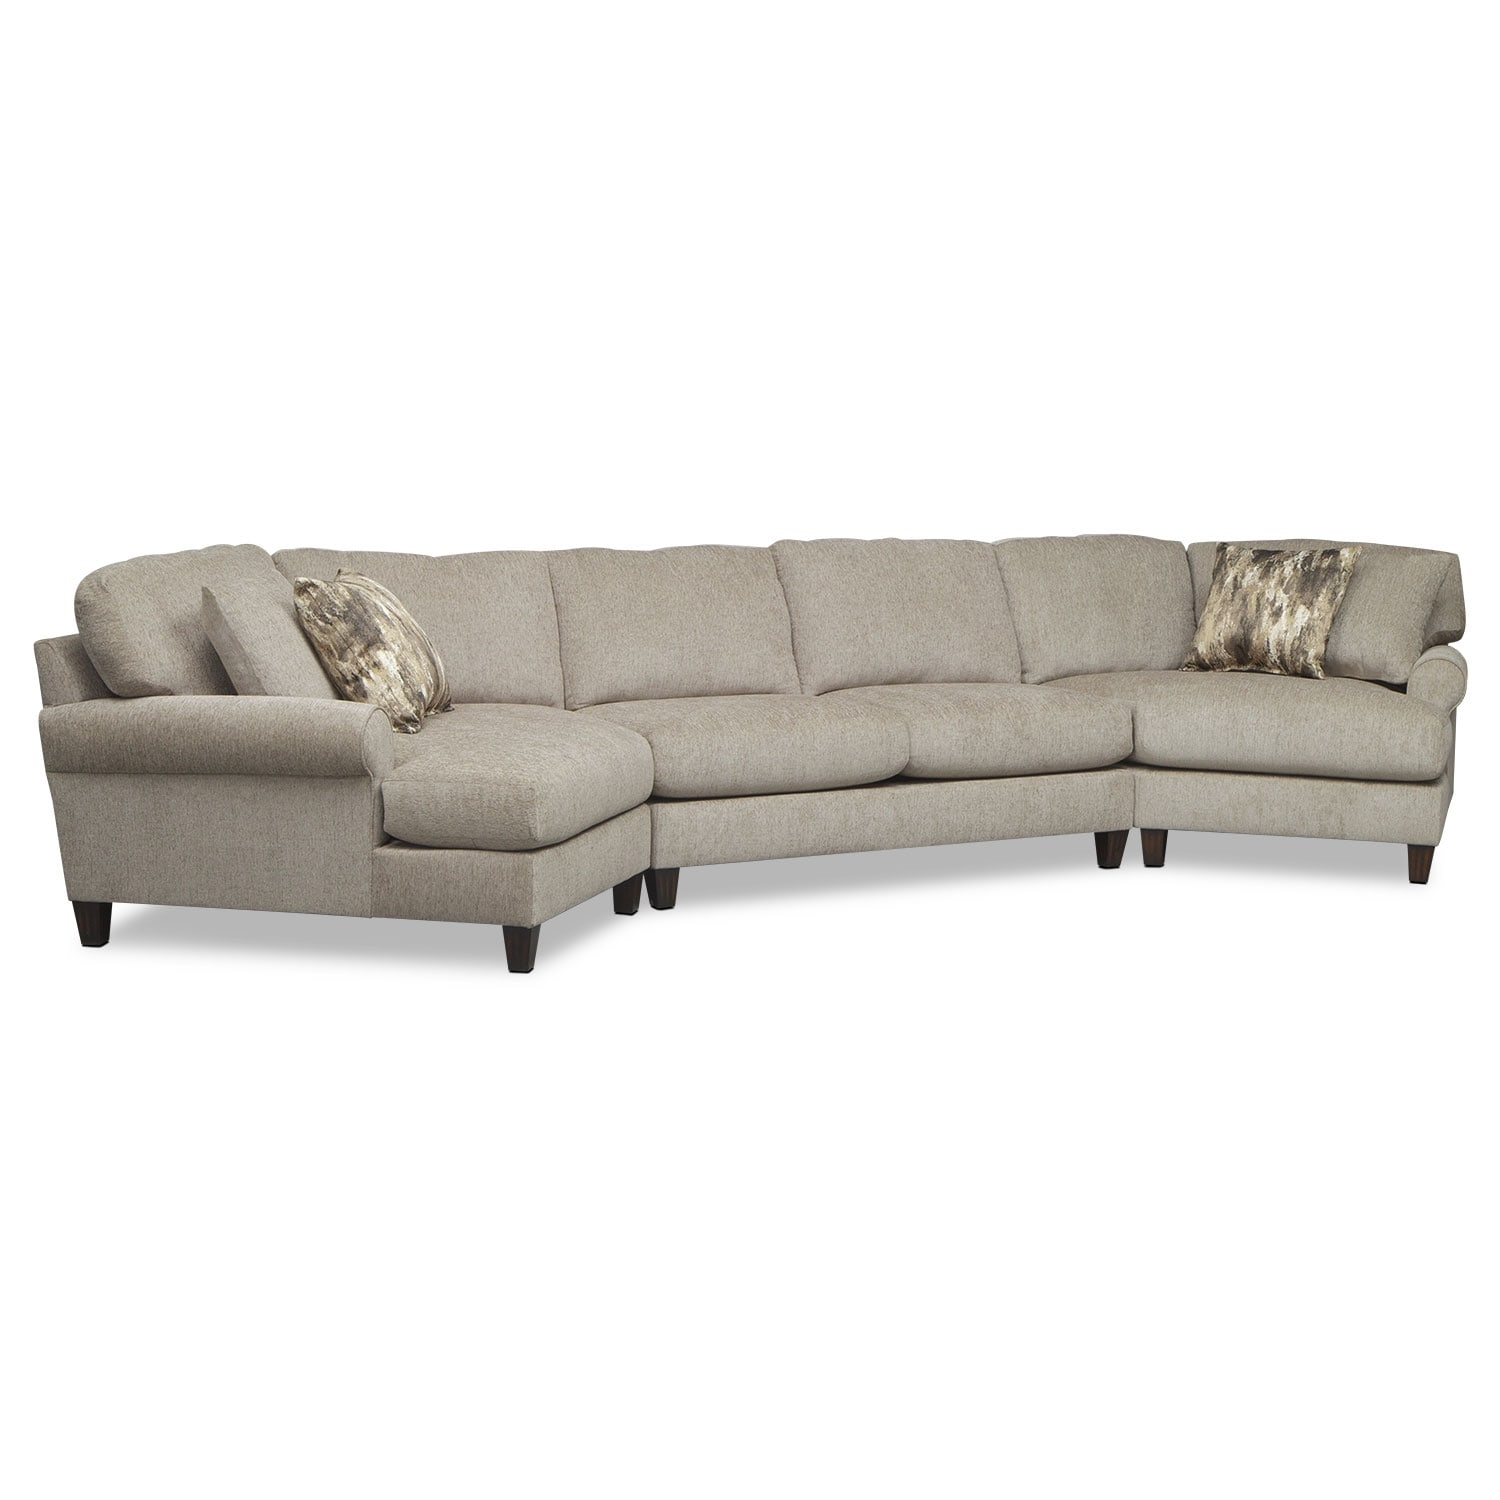 [Karma Mink 3 Pc. Sectional with 2 Cuddlers]